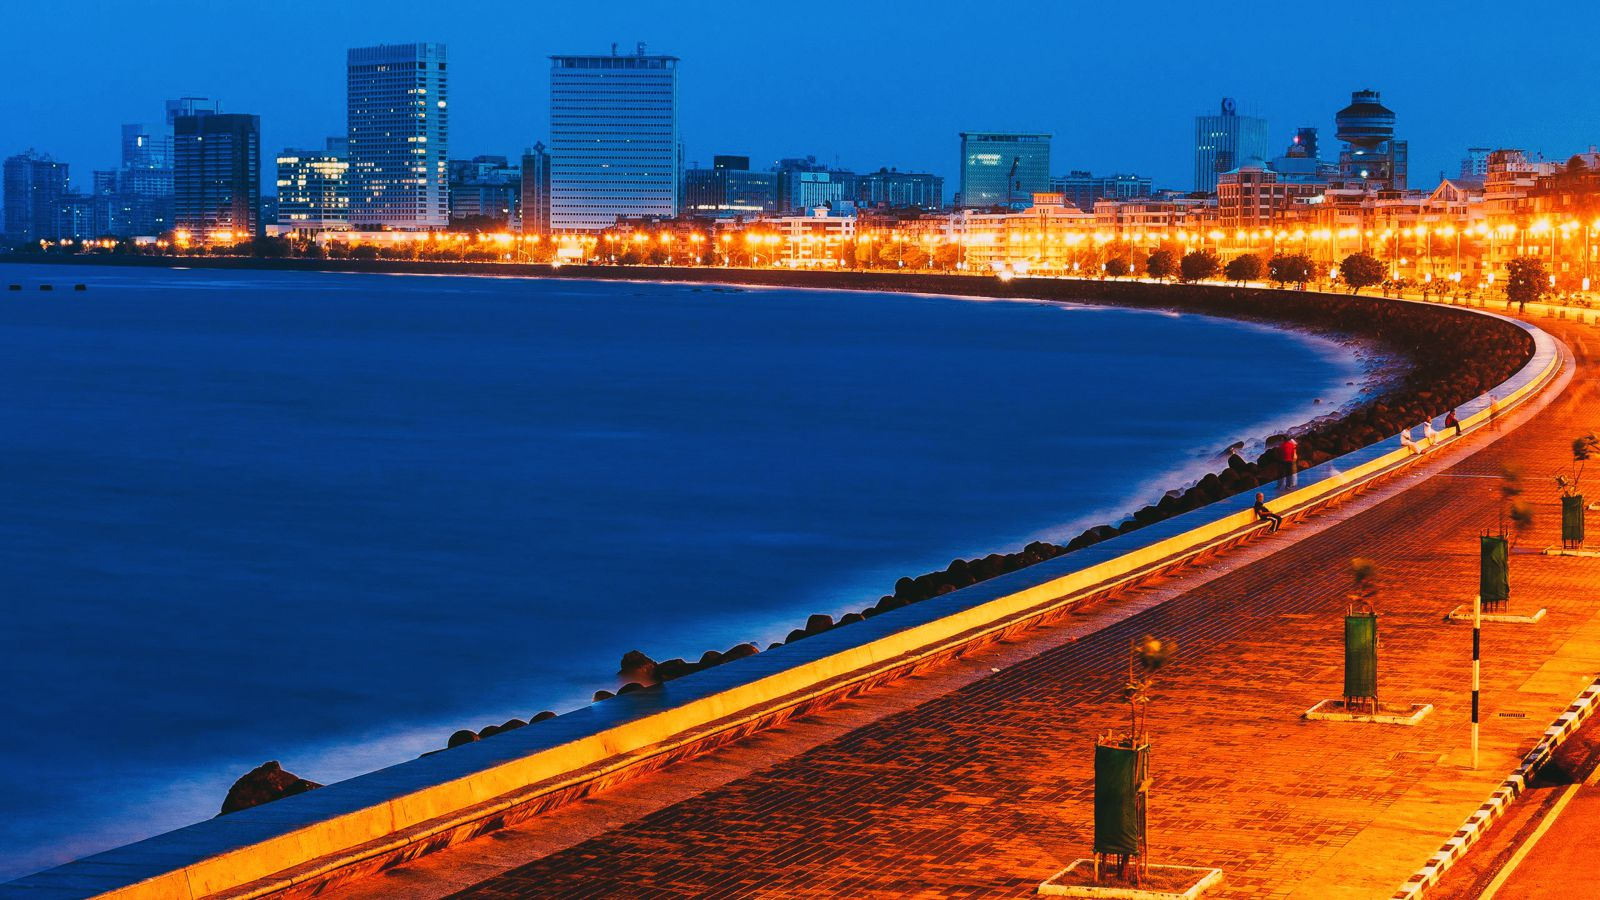 10 Amazing Cities You Need To Visit In India (And Why!) (4)